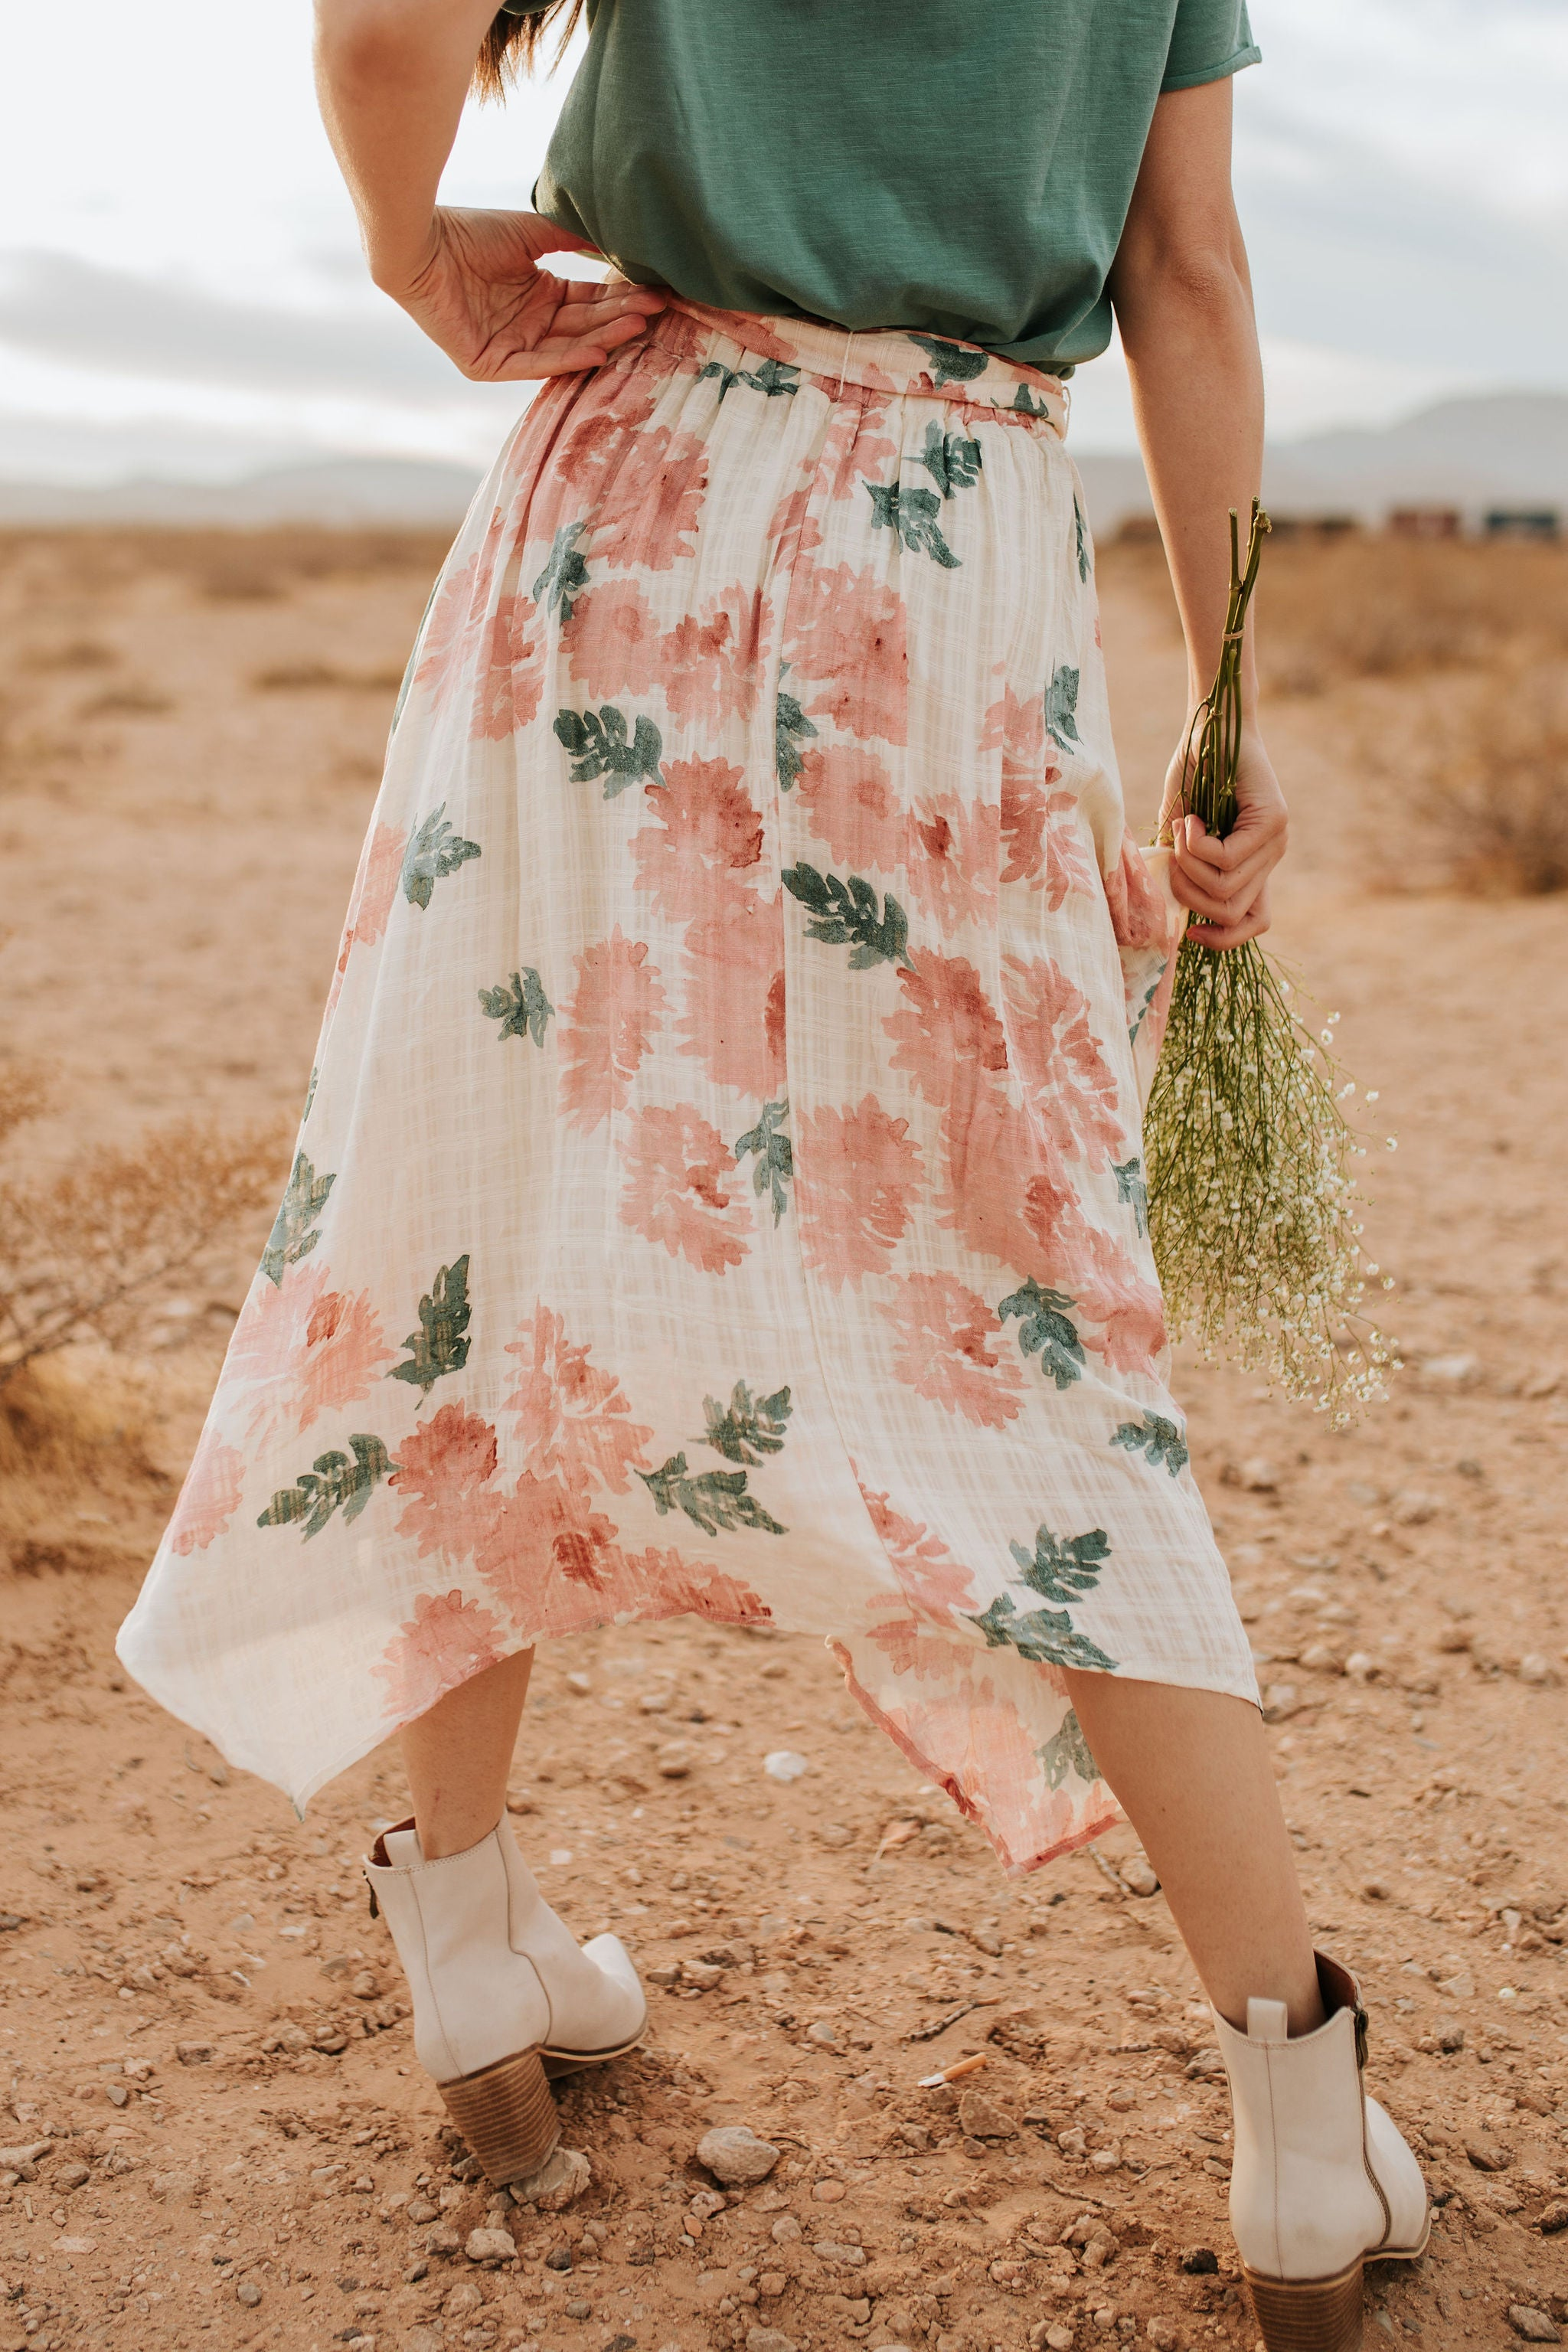 THE FLOWER BED FLORAL SKIRT IN CREAM